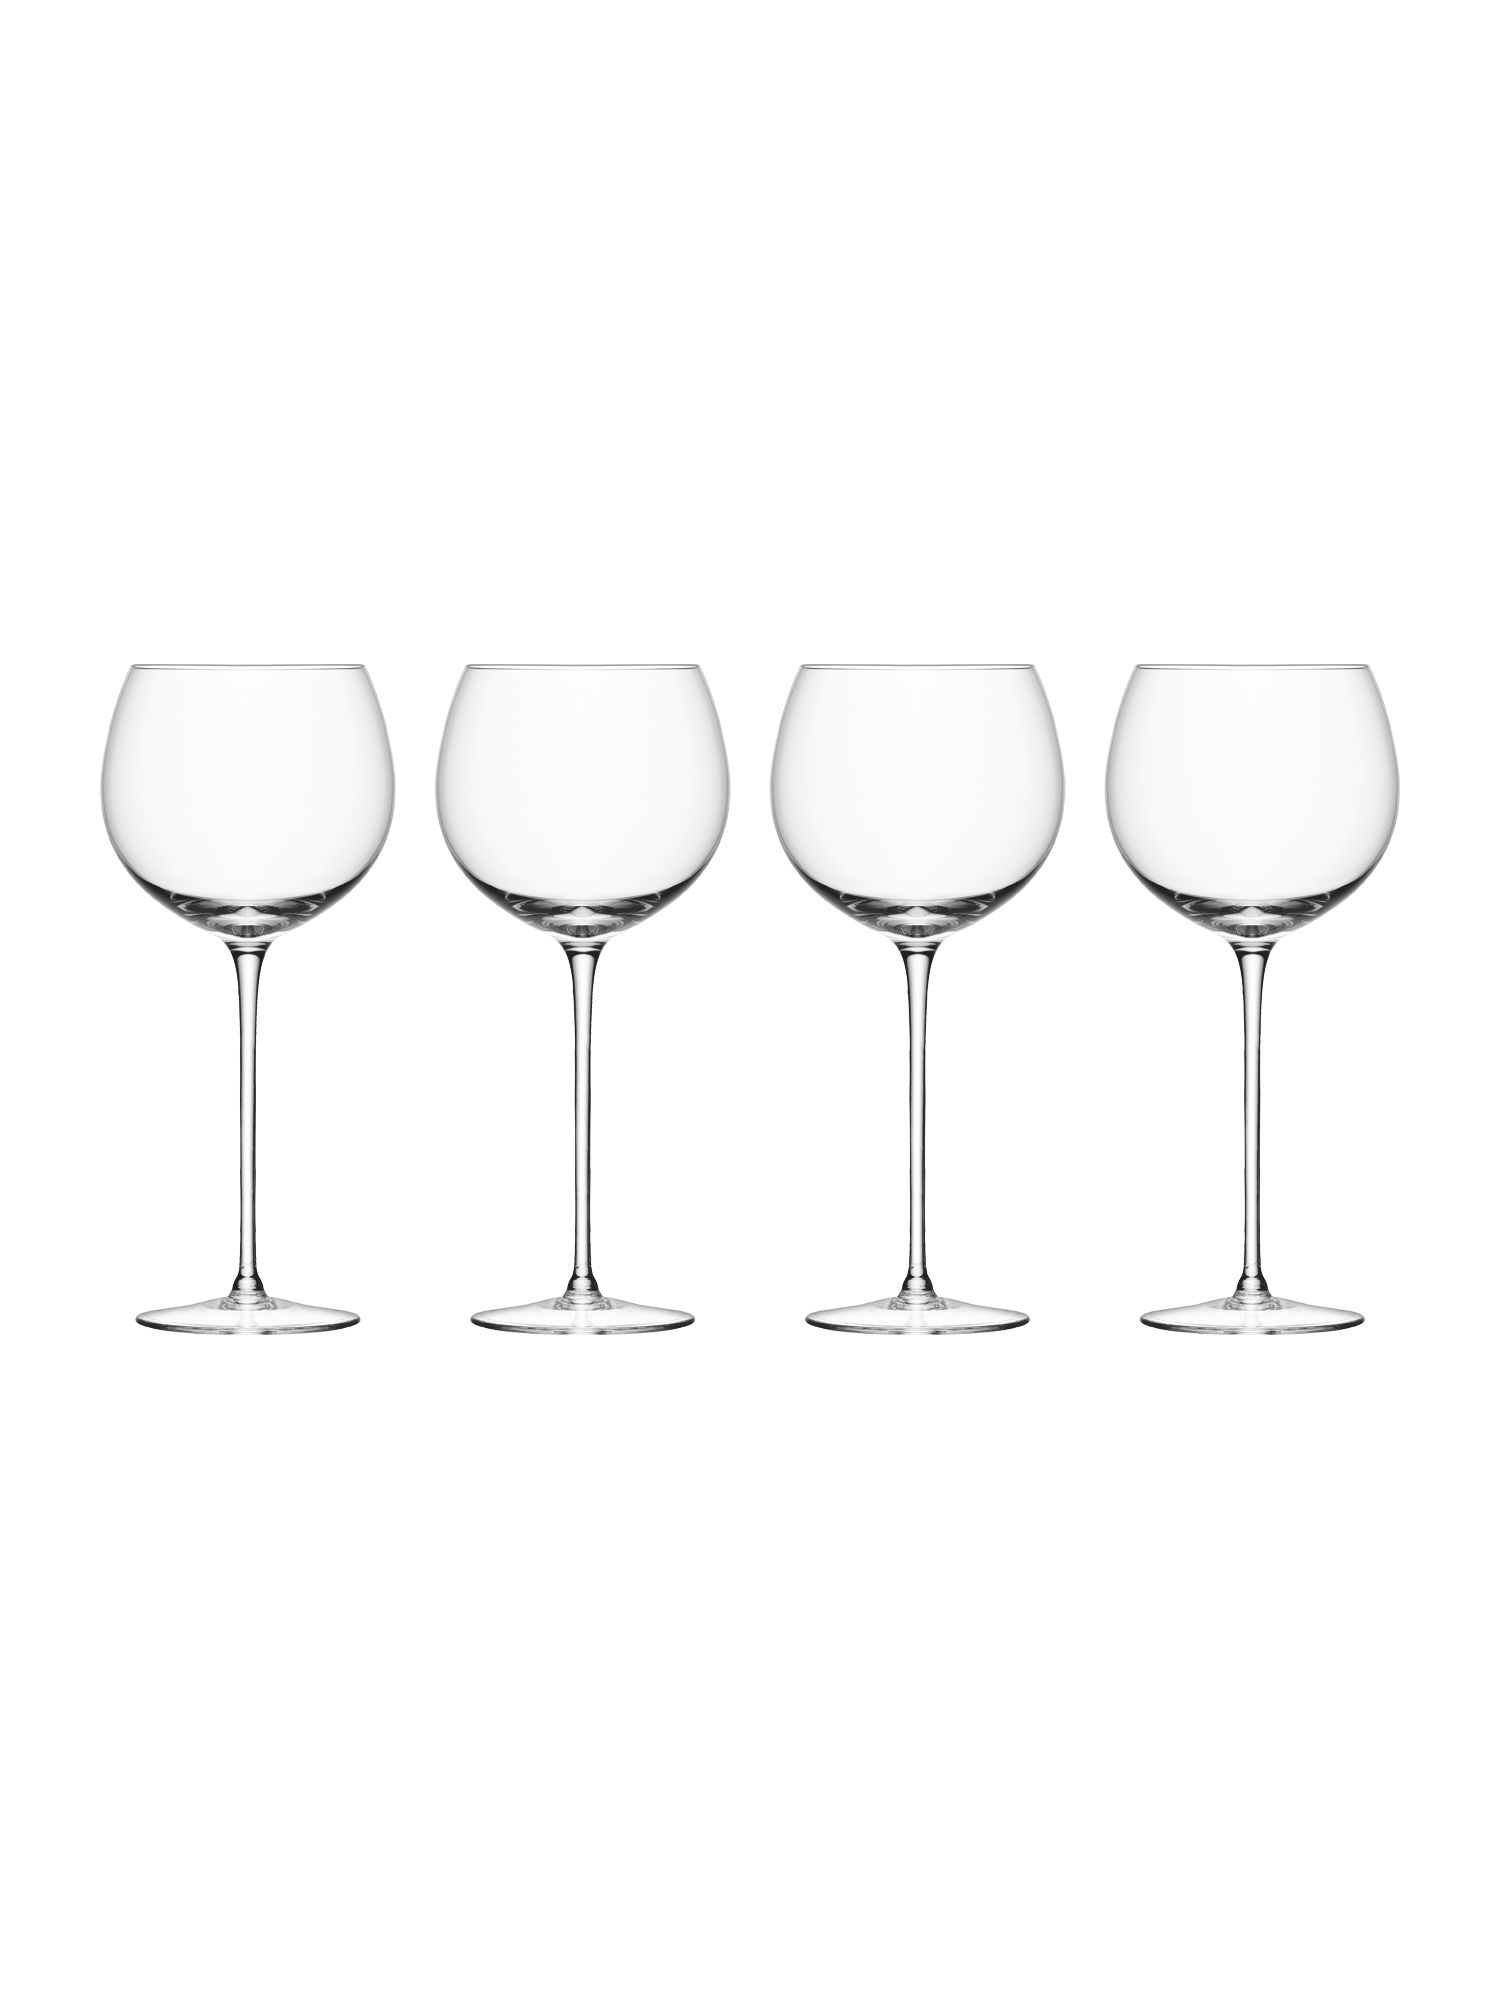 Gorgeous Mikasa Glass And 4 Pieces Mikasa Wine Glasses